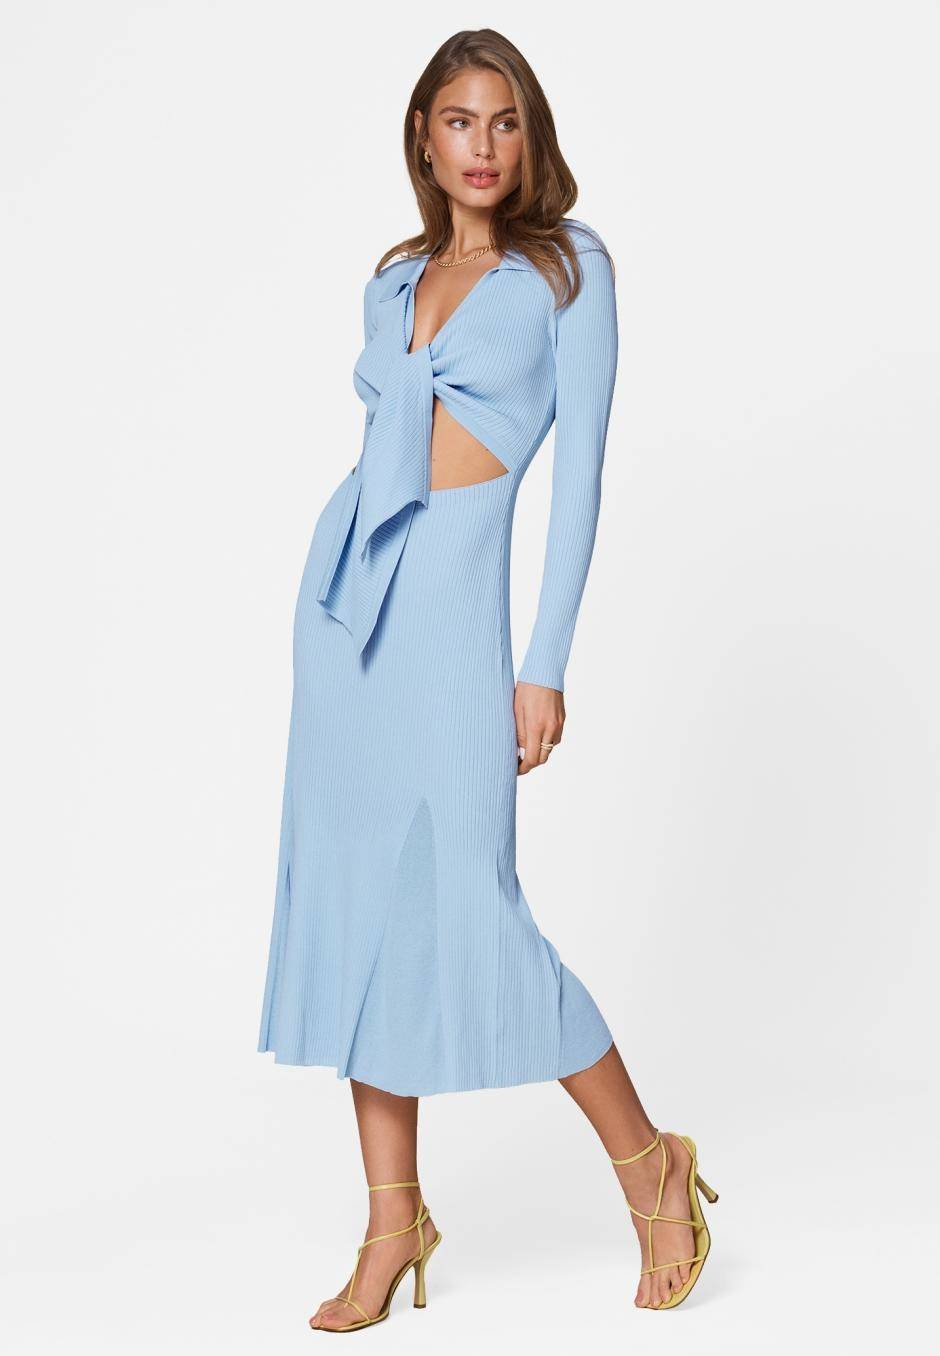 Adoore Knitted Riviera Dress Blue